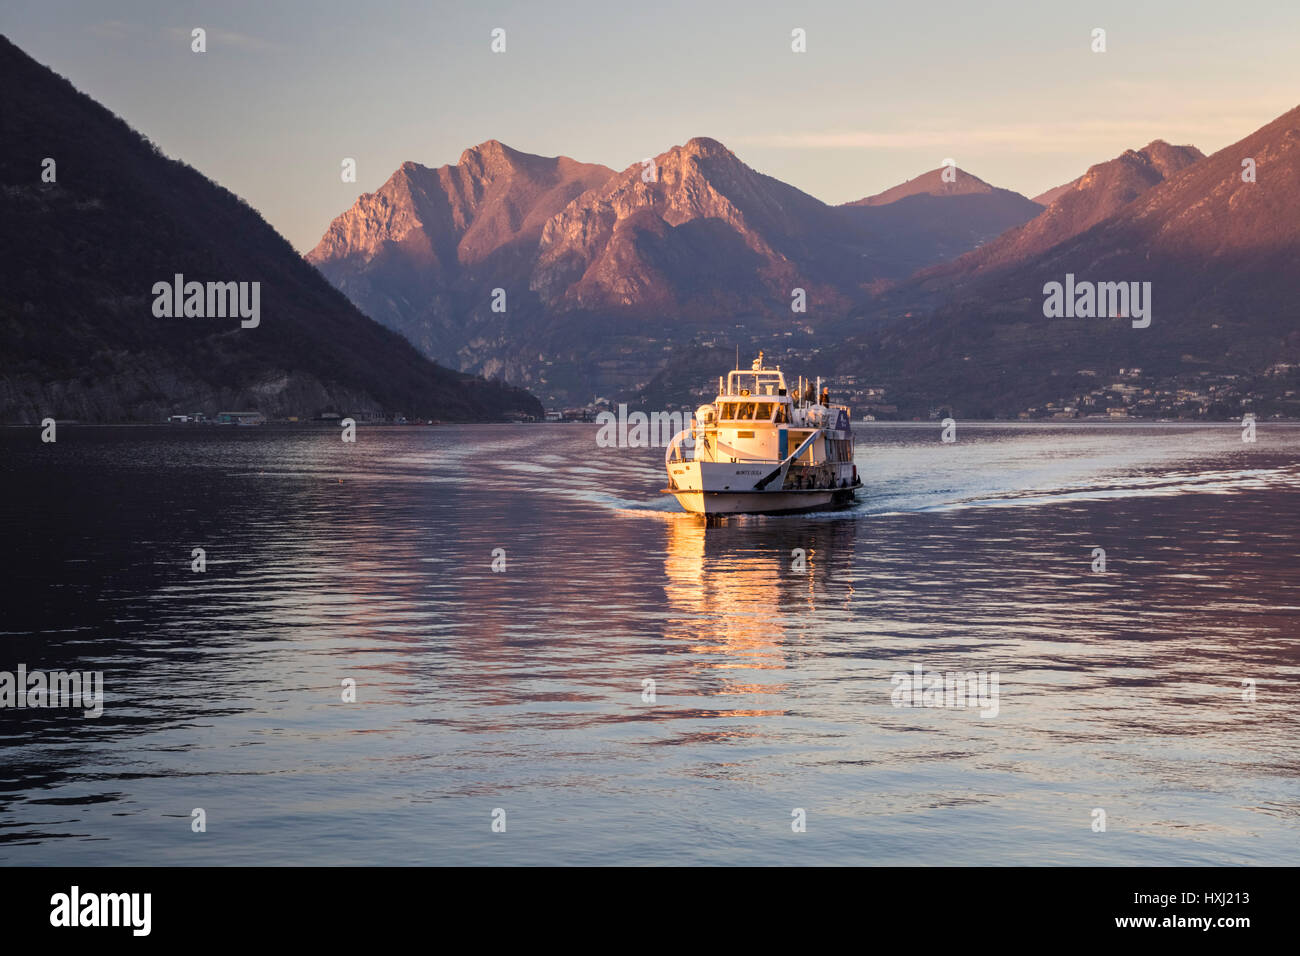 A boat approaching Sulzano, in the distance the mount Corna Trentapassi, Brescia Province, Iseo Lake, Lombardy, - Stock Image